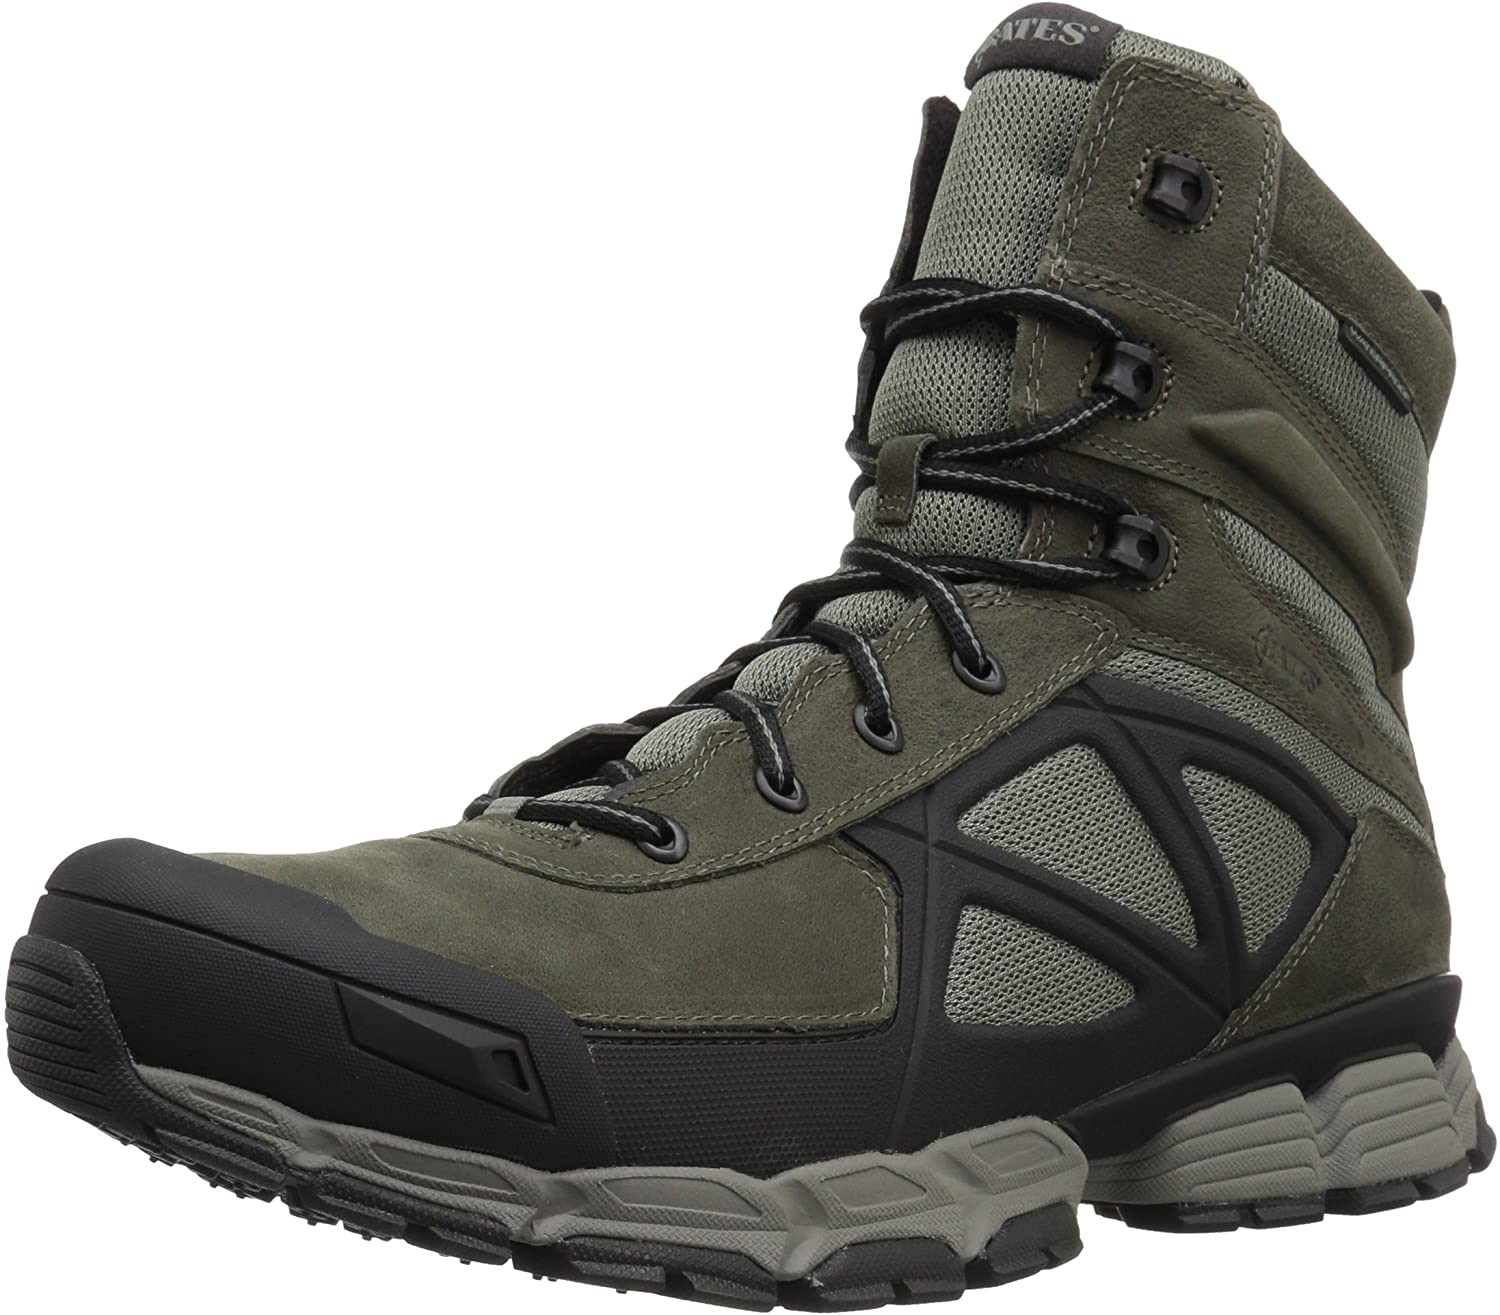 Bates Men's Velocitor FX Military and Tactical Boot